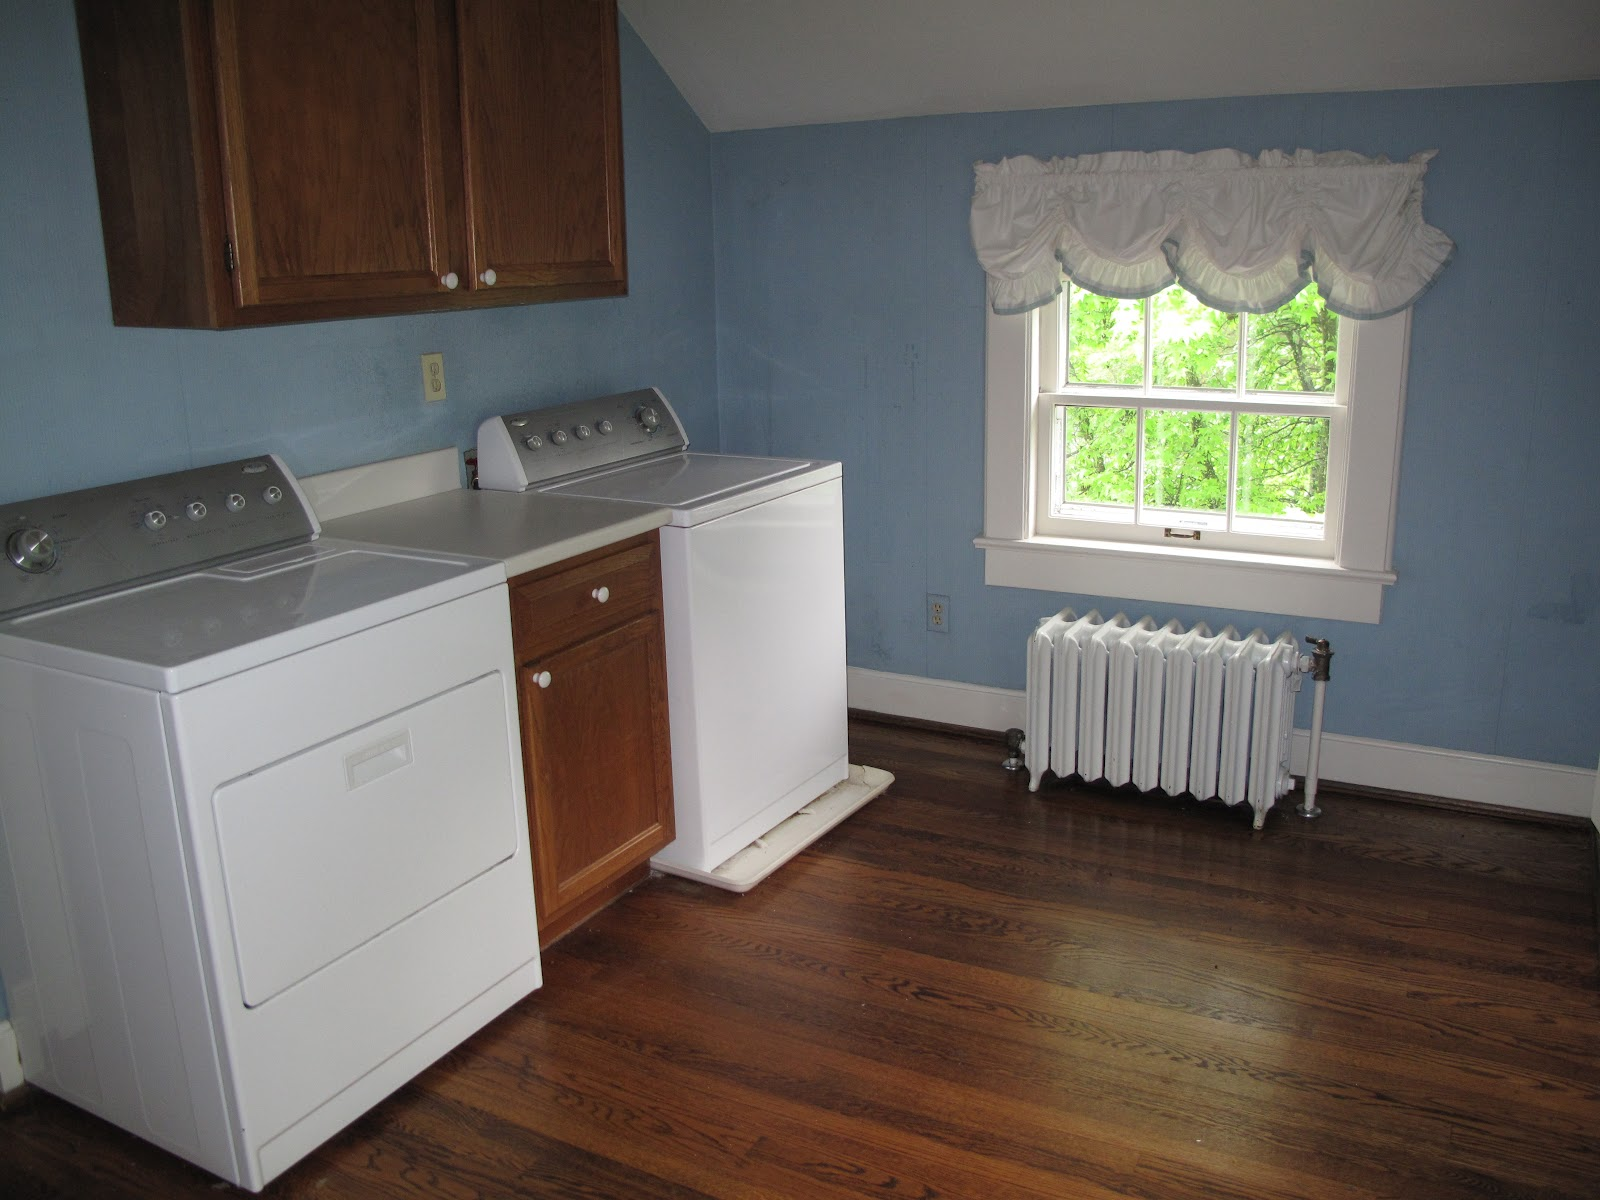 Laundry Room makeover - On Chestnut Ridge